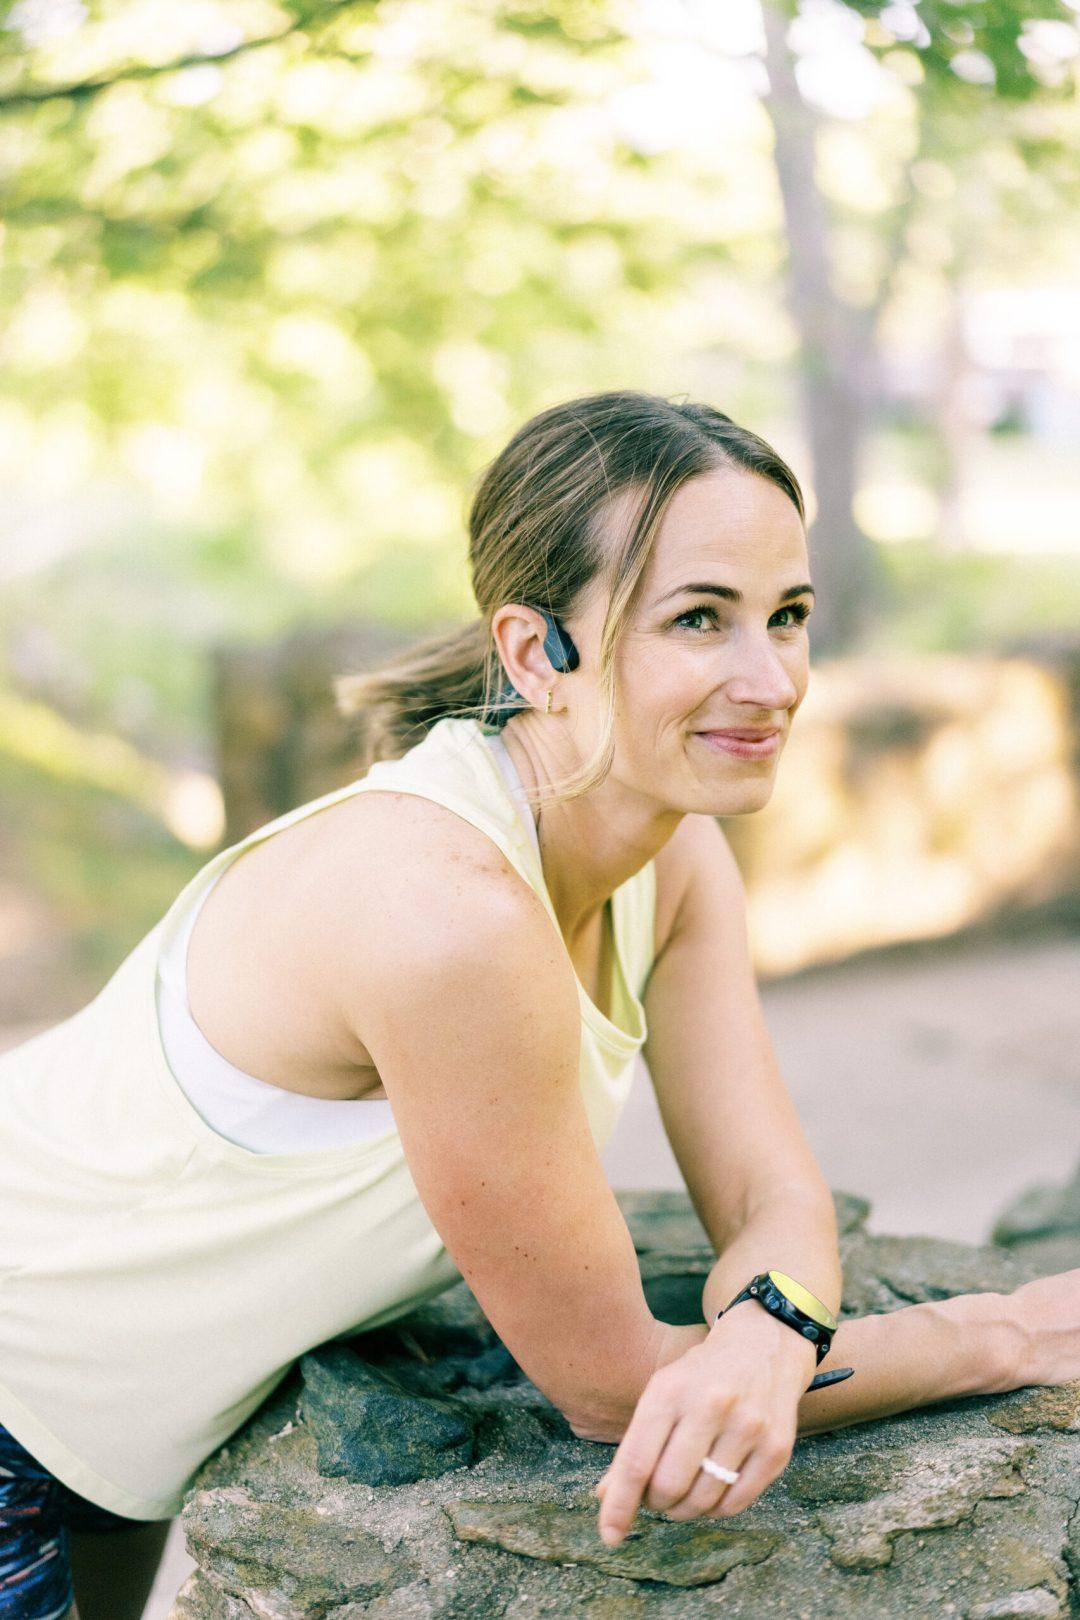 Aftershokz Earbuds for workout